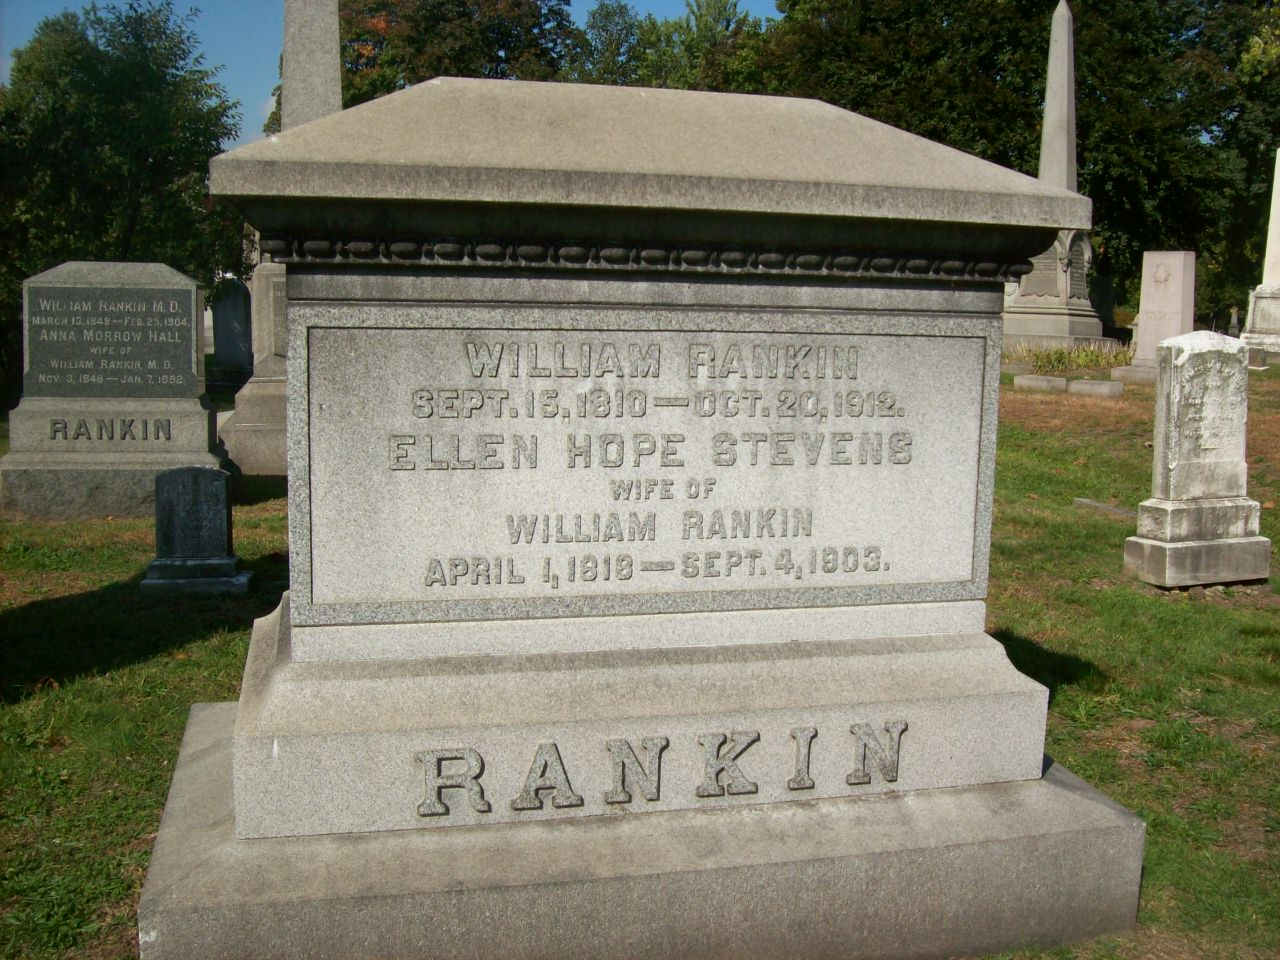 William Rankin, Jr. is buried at Mount Pleasant Cemetery, Newark, New Jersey.